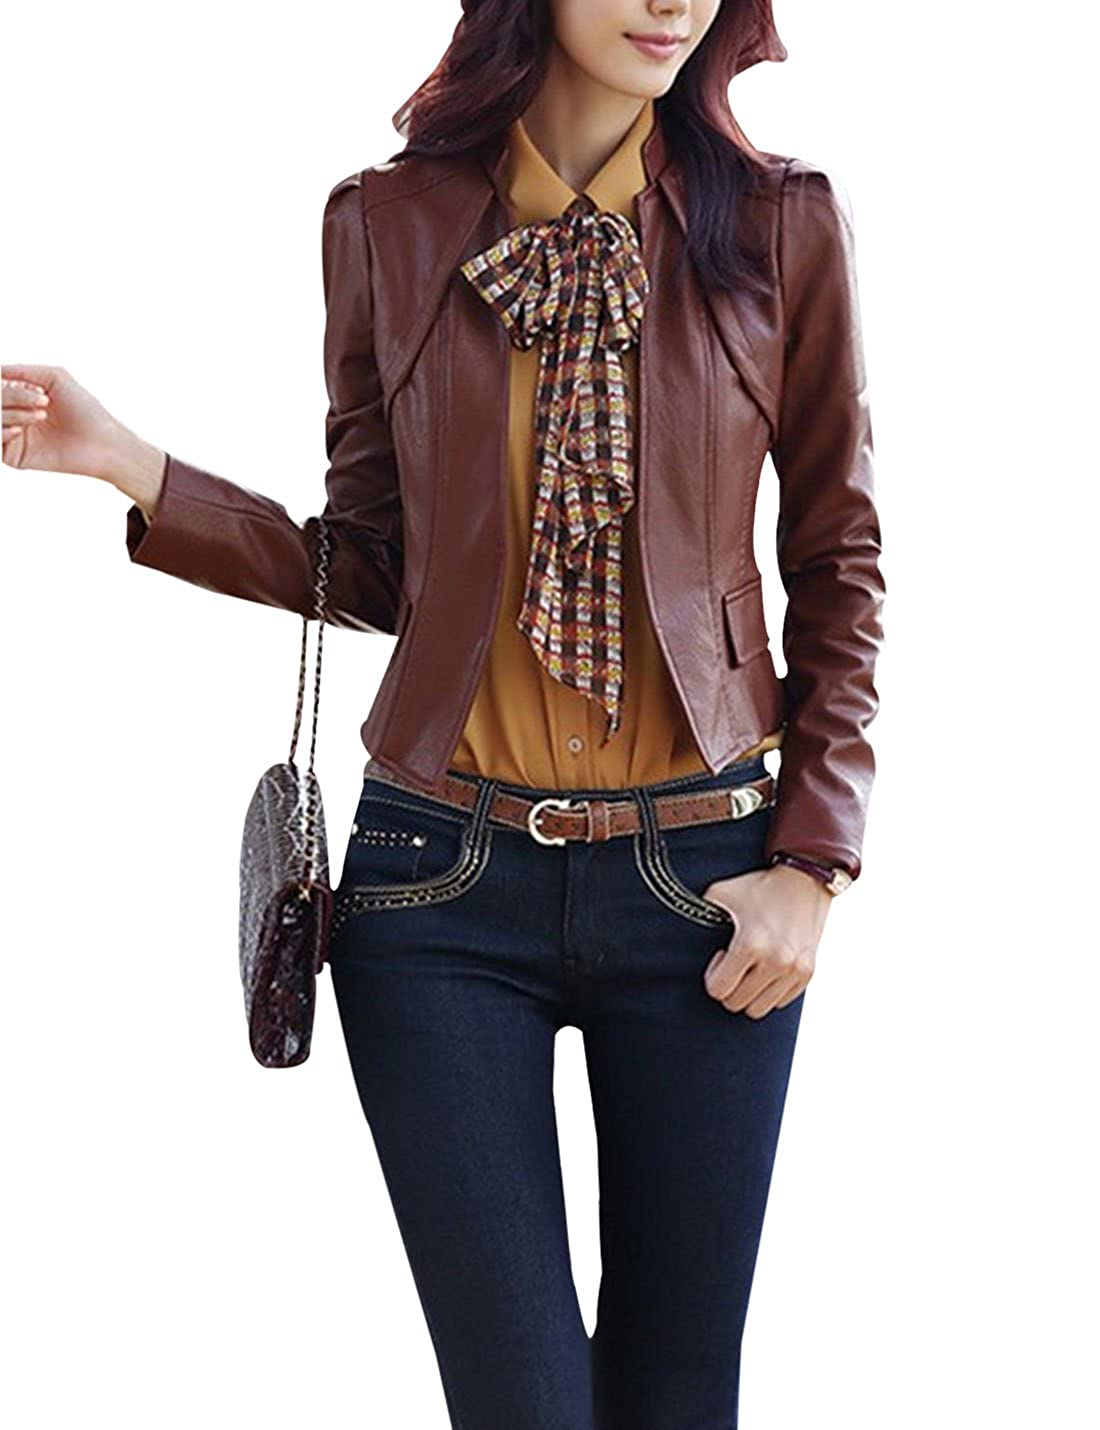 Yeokou Women's Solid Open Front PU Leather Moto Biker Slim Short Jacket Coat